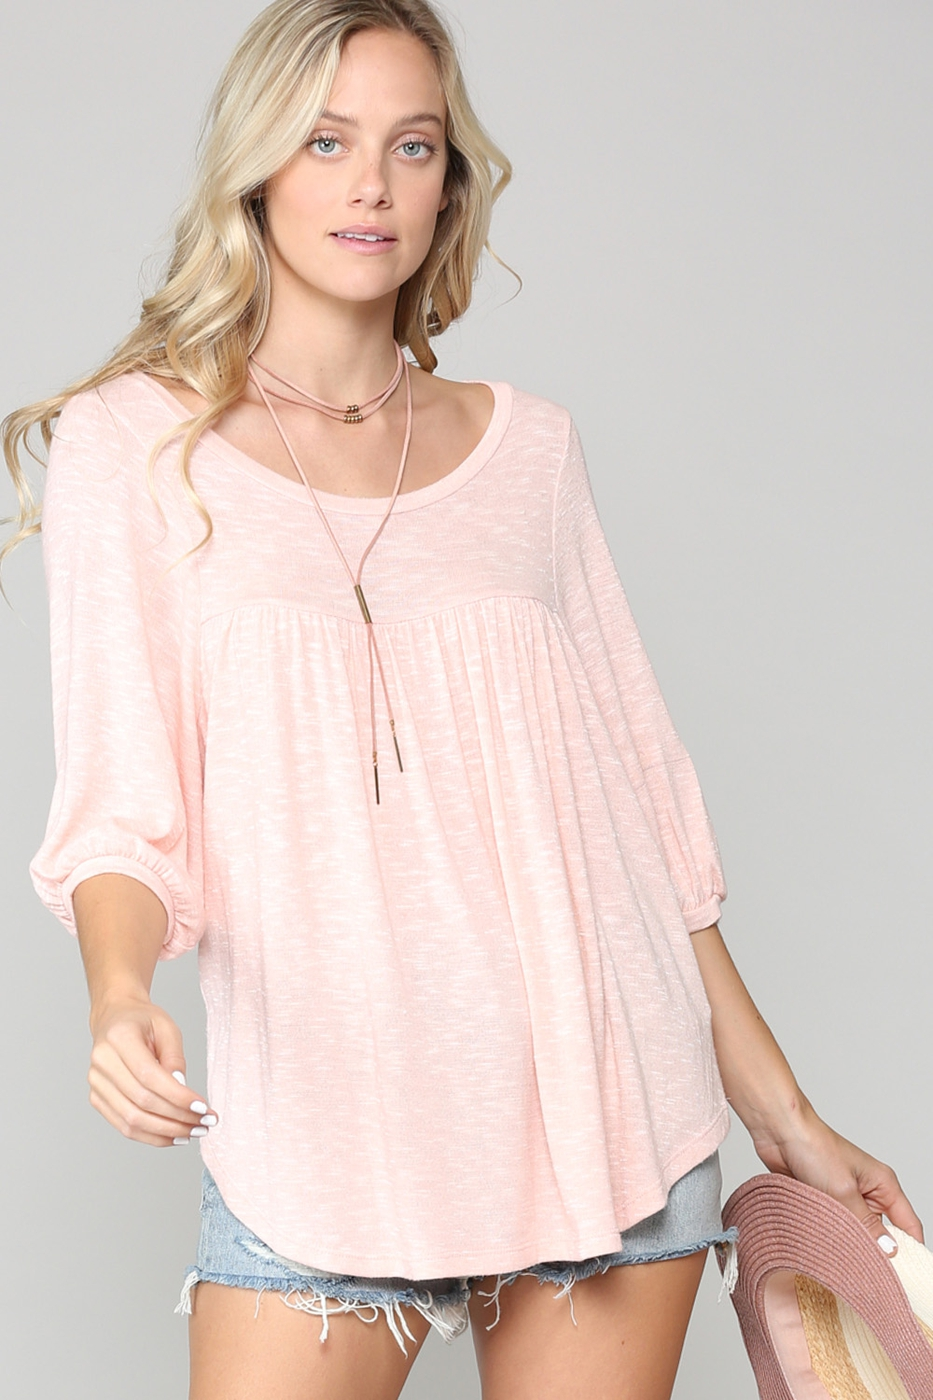 RUFFLED BODY PUFF SLEEVES TOP - orangeshine.com